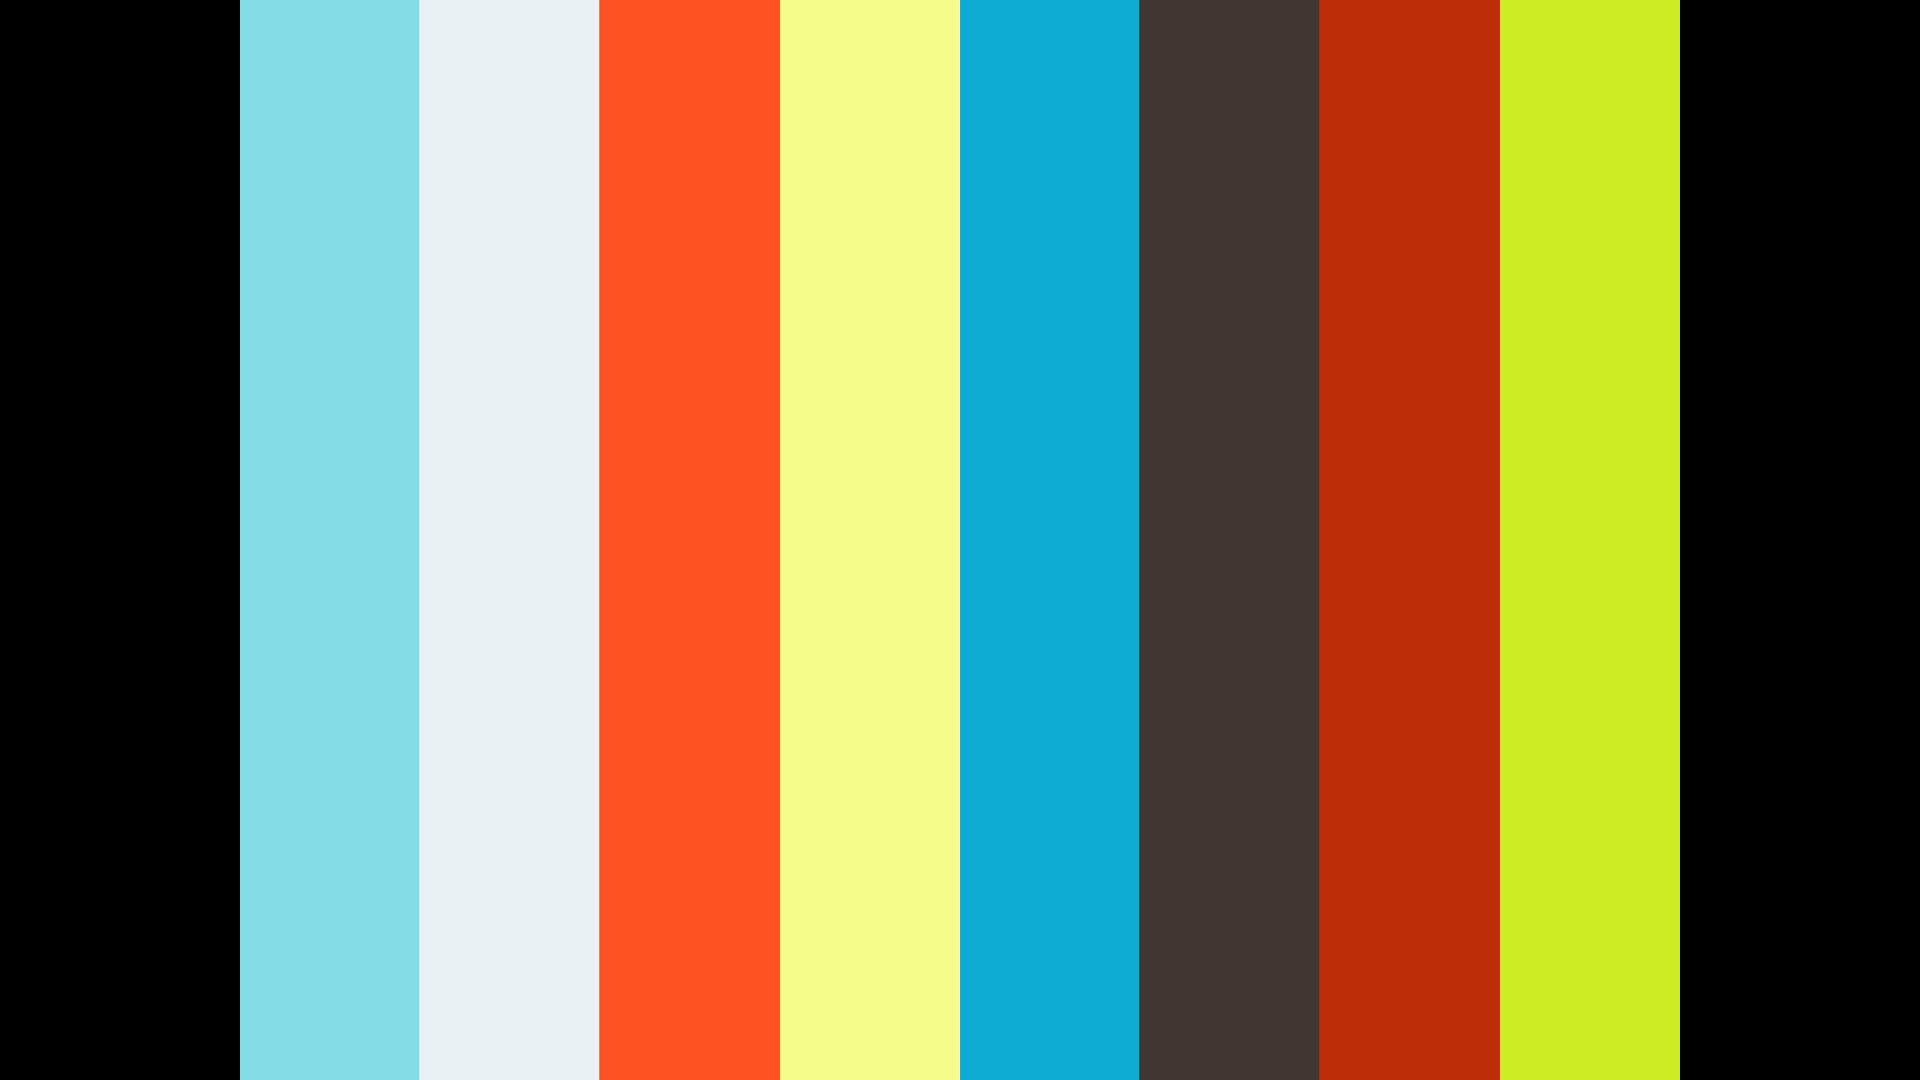 Artnight Christmas Campaign 2019